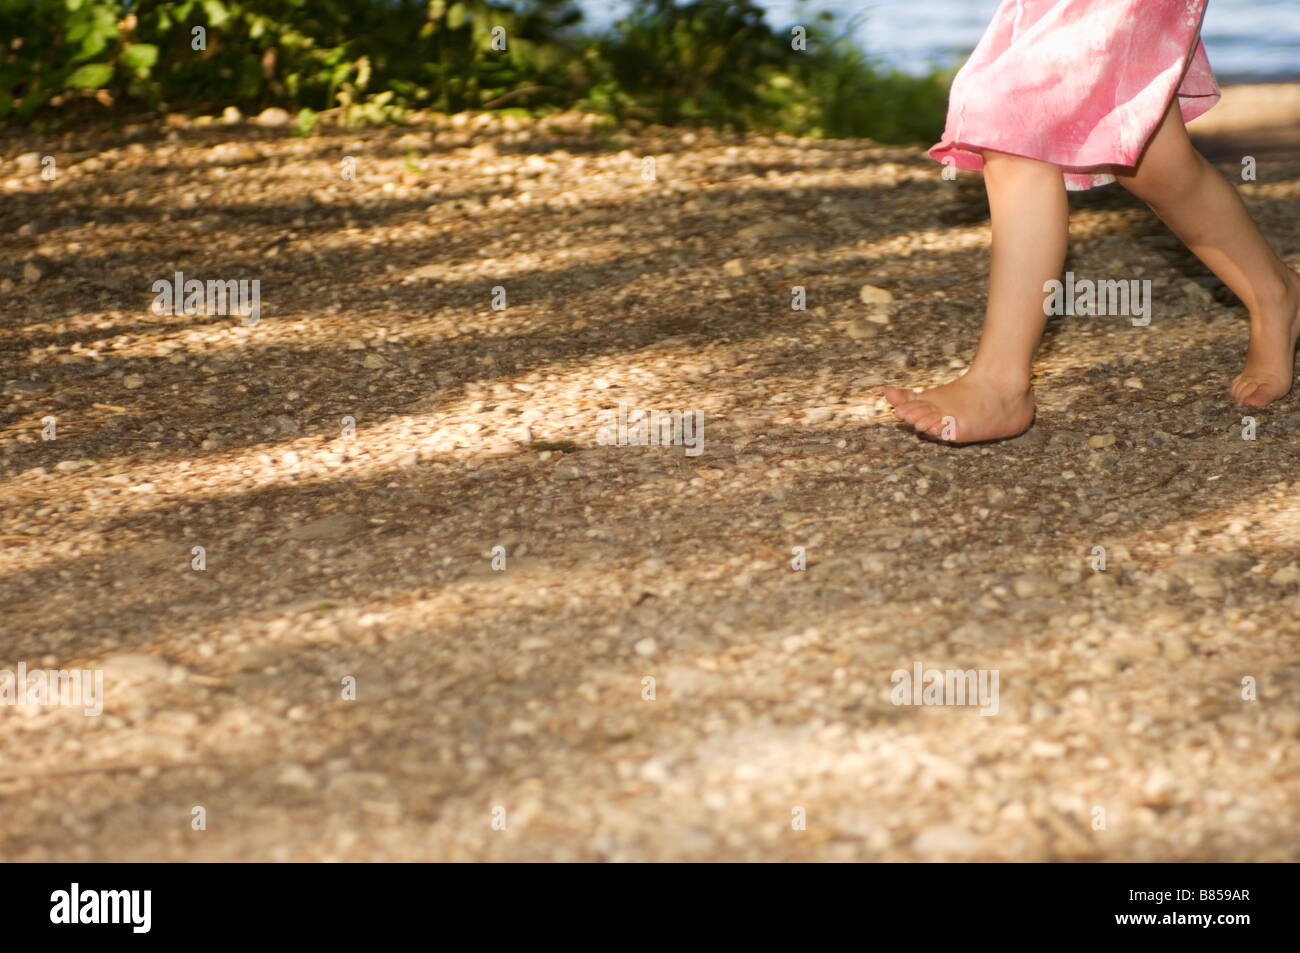 detail of little girl walking barefoot through forest - Stock Image